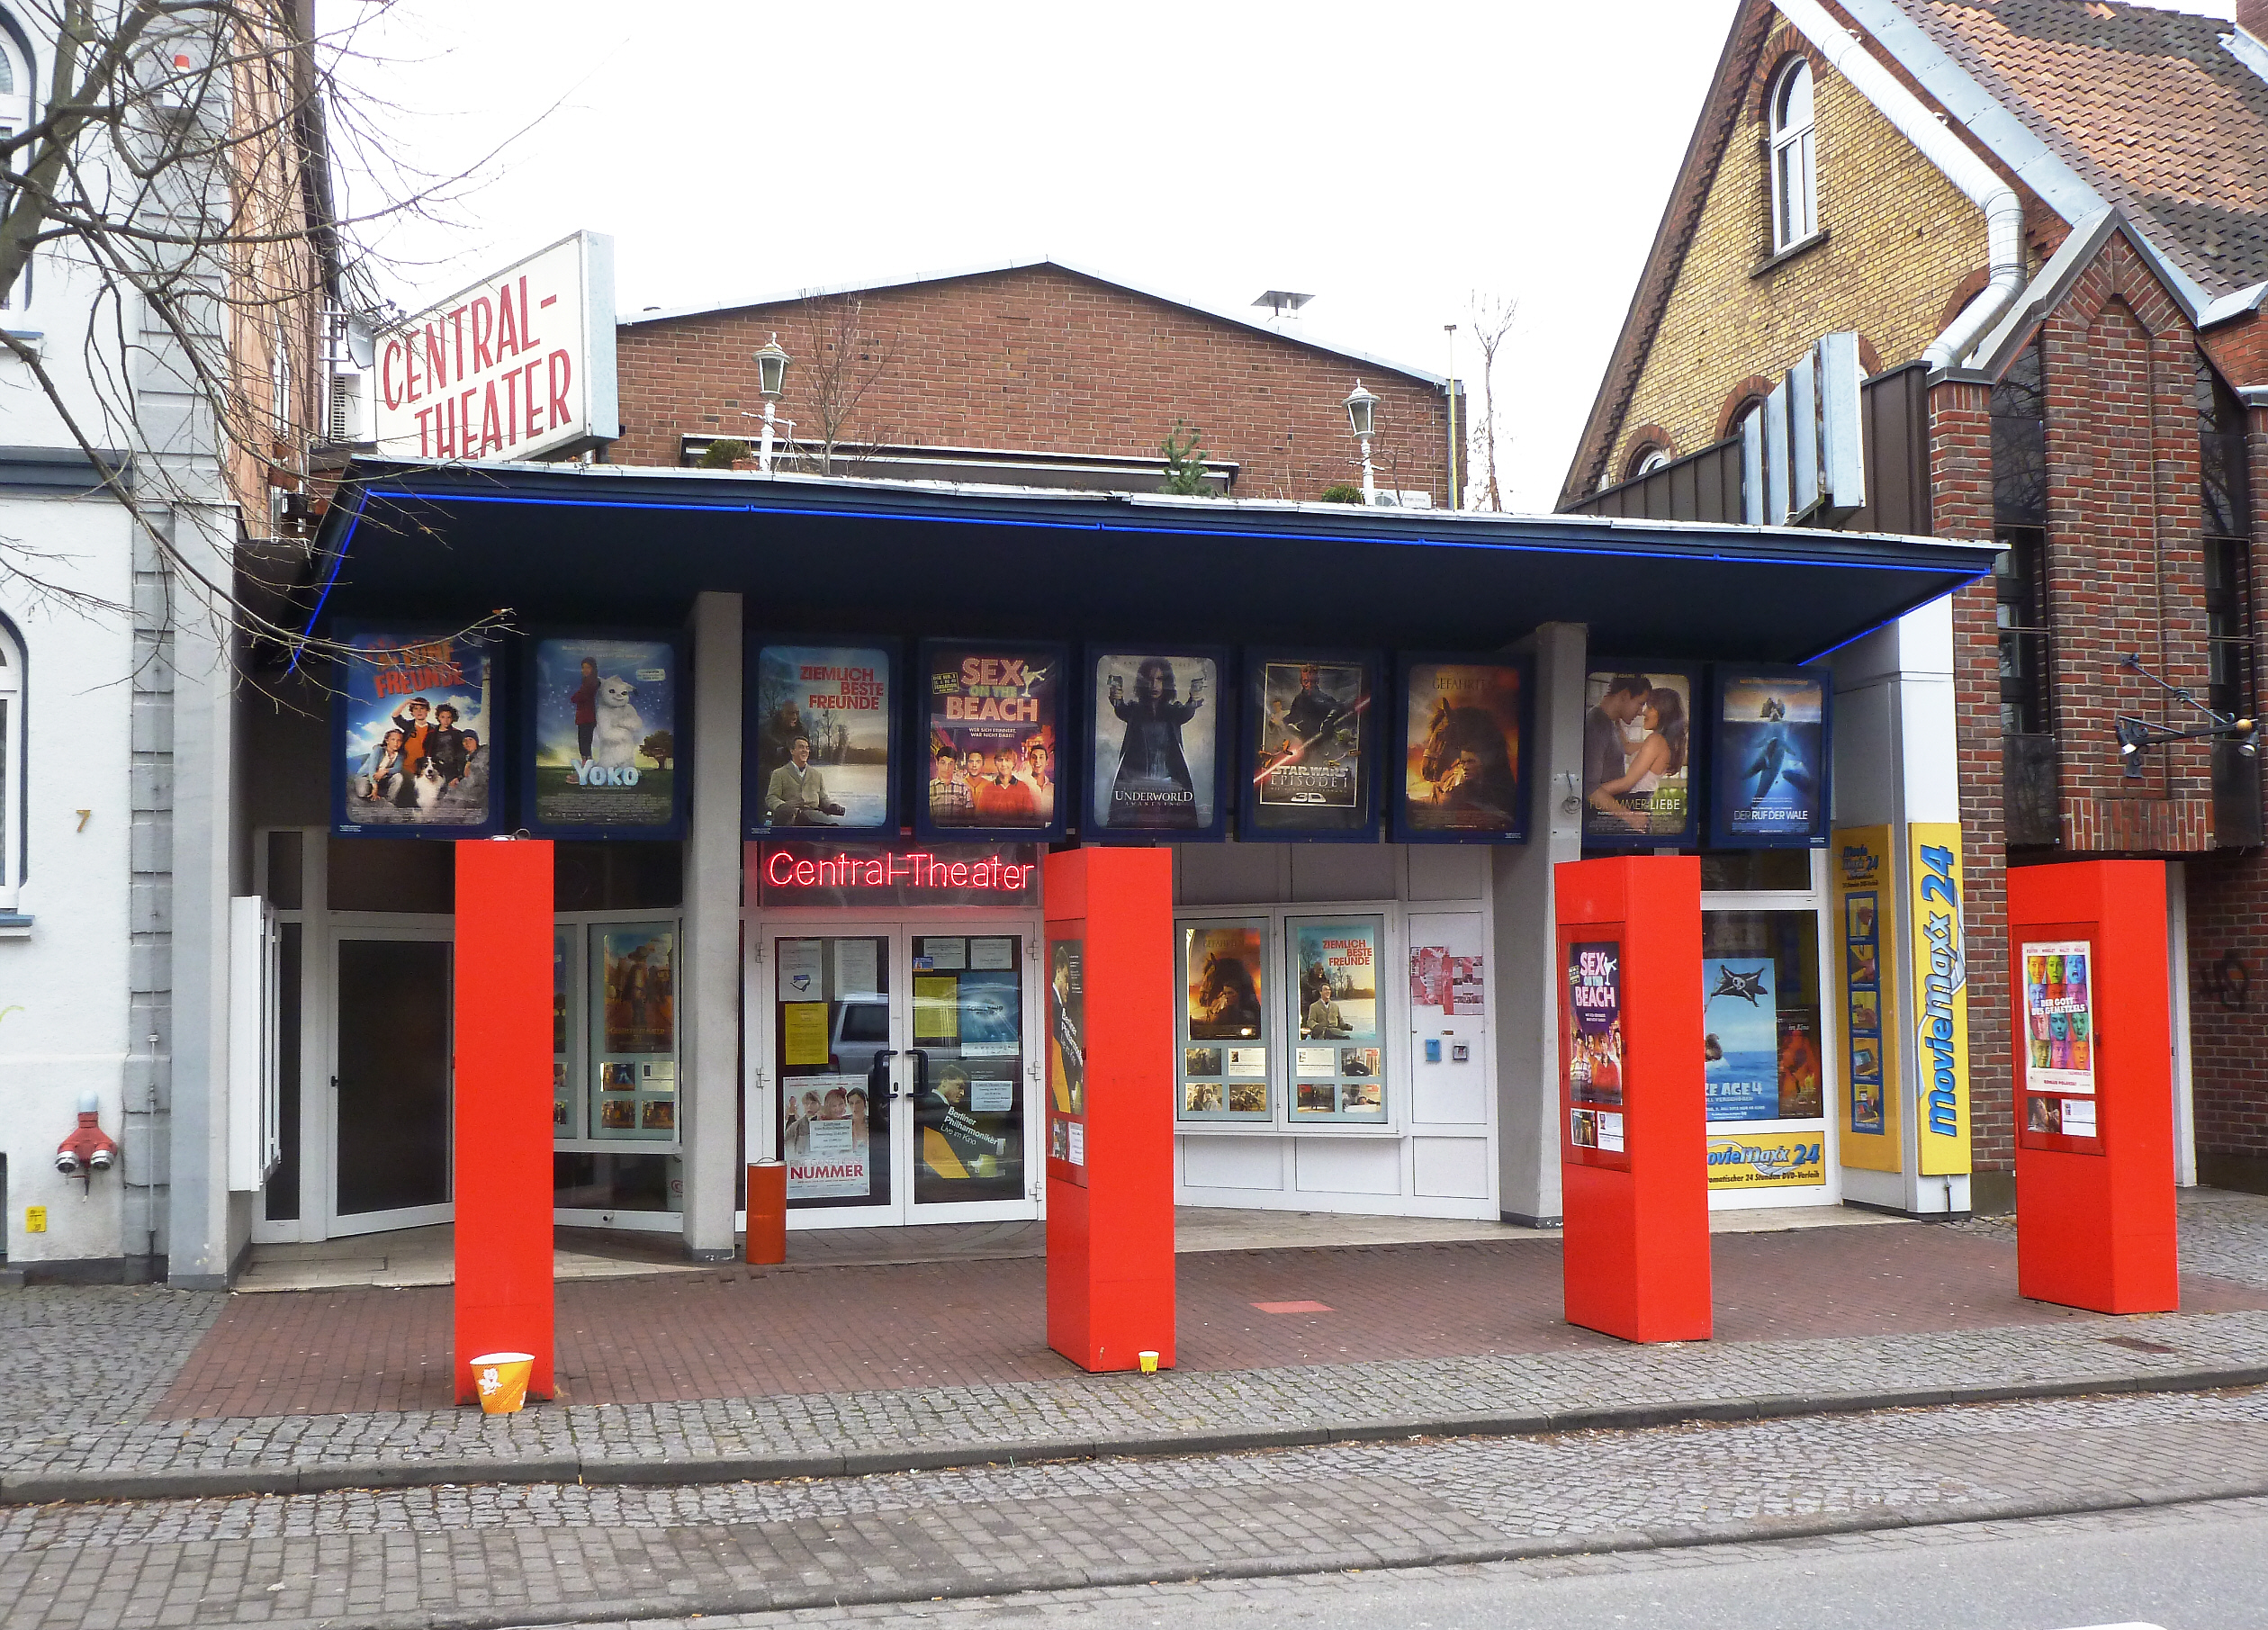 Central-Theater Uelzen